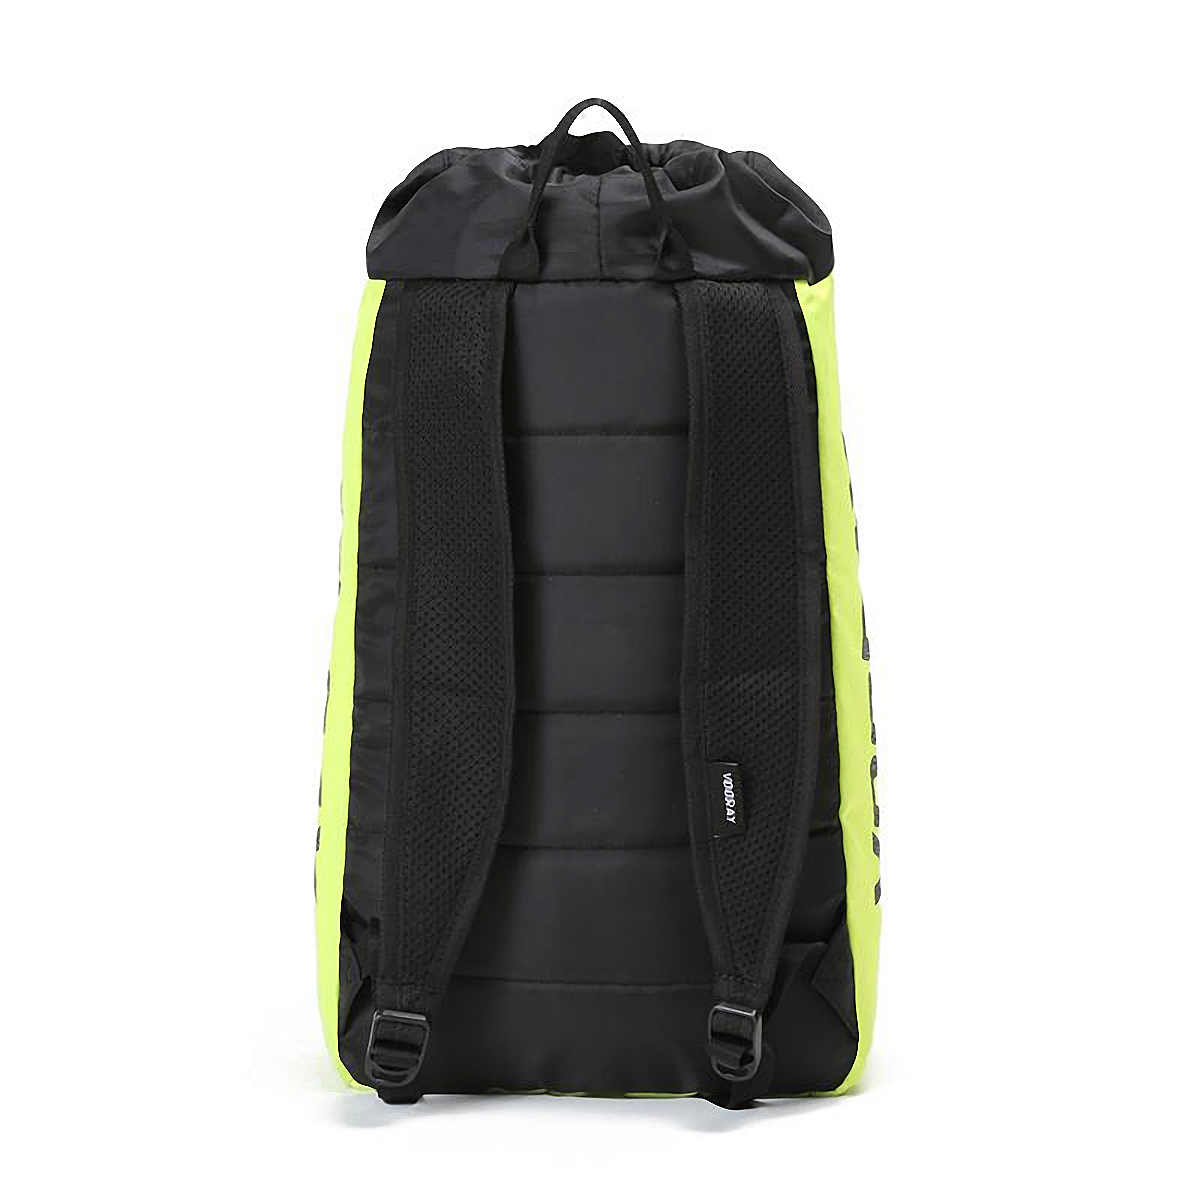 Vooray Stride Cinch Backpack - Color: Neon Yellow - Size: OS, Neon Yellow, large, image 3